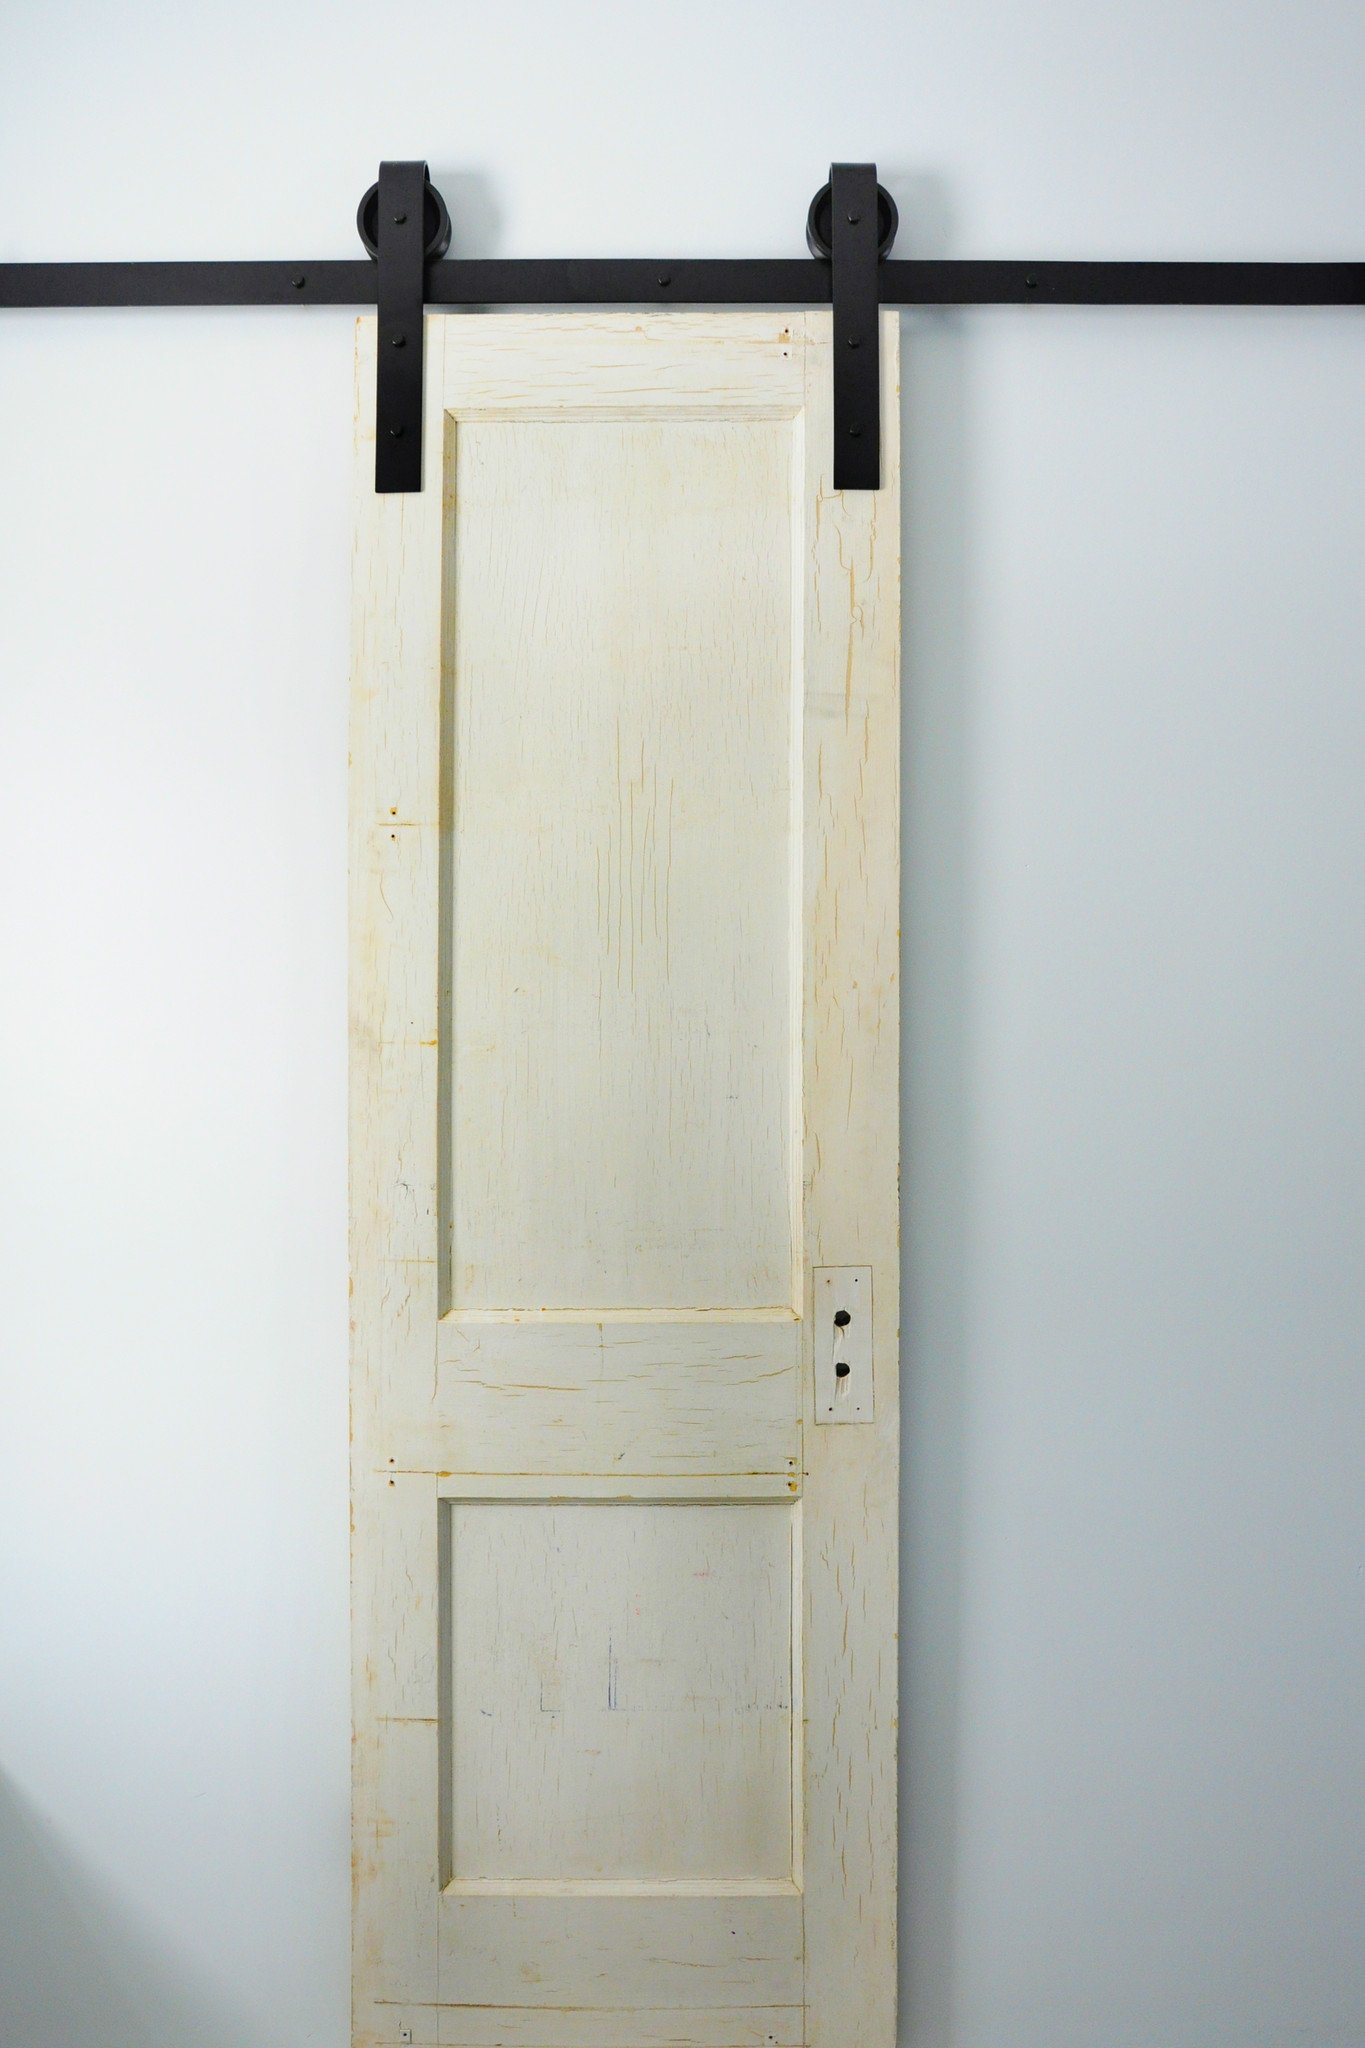 for wood follow super tutorials with plumbing barn rolling door even sliding diy novice the to bathroom using most easy hardware pipe constructors